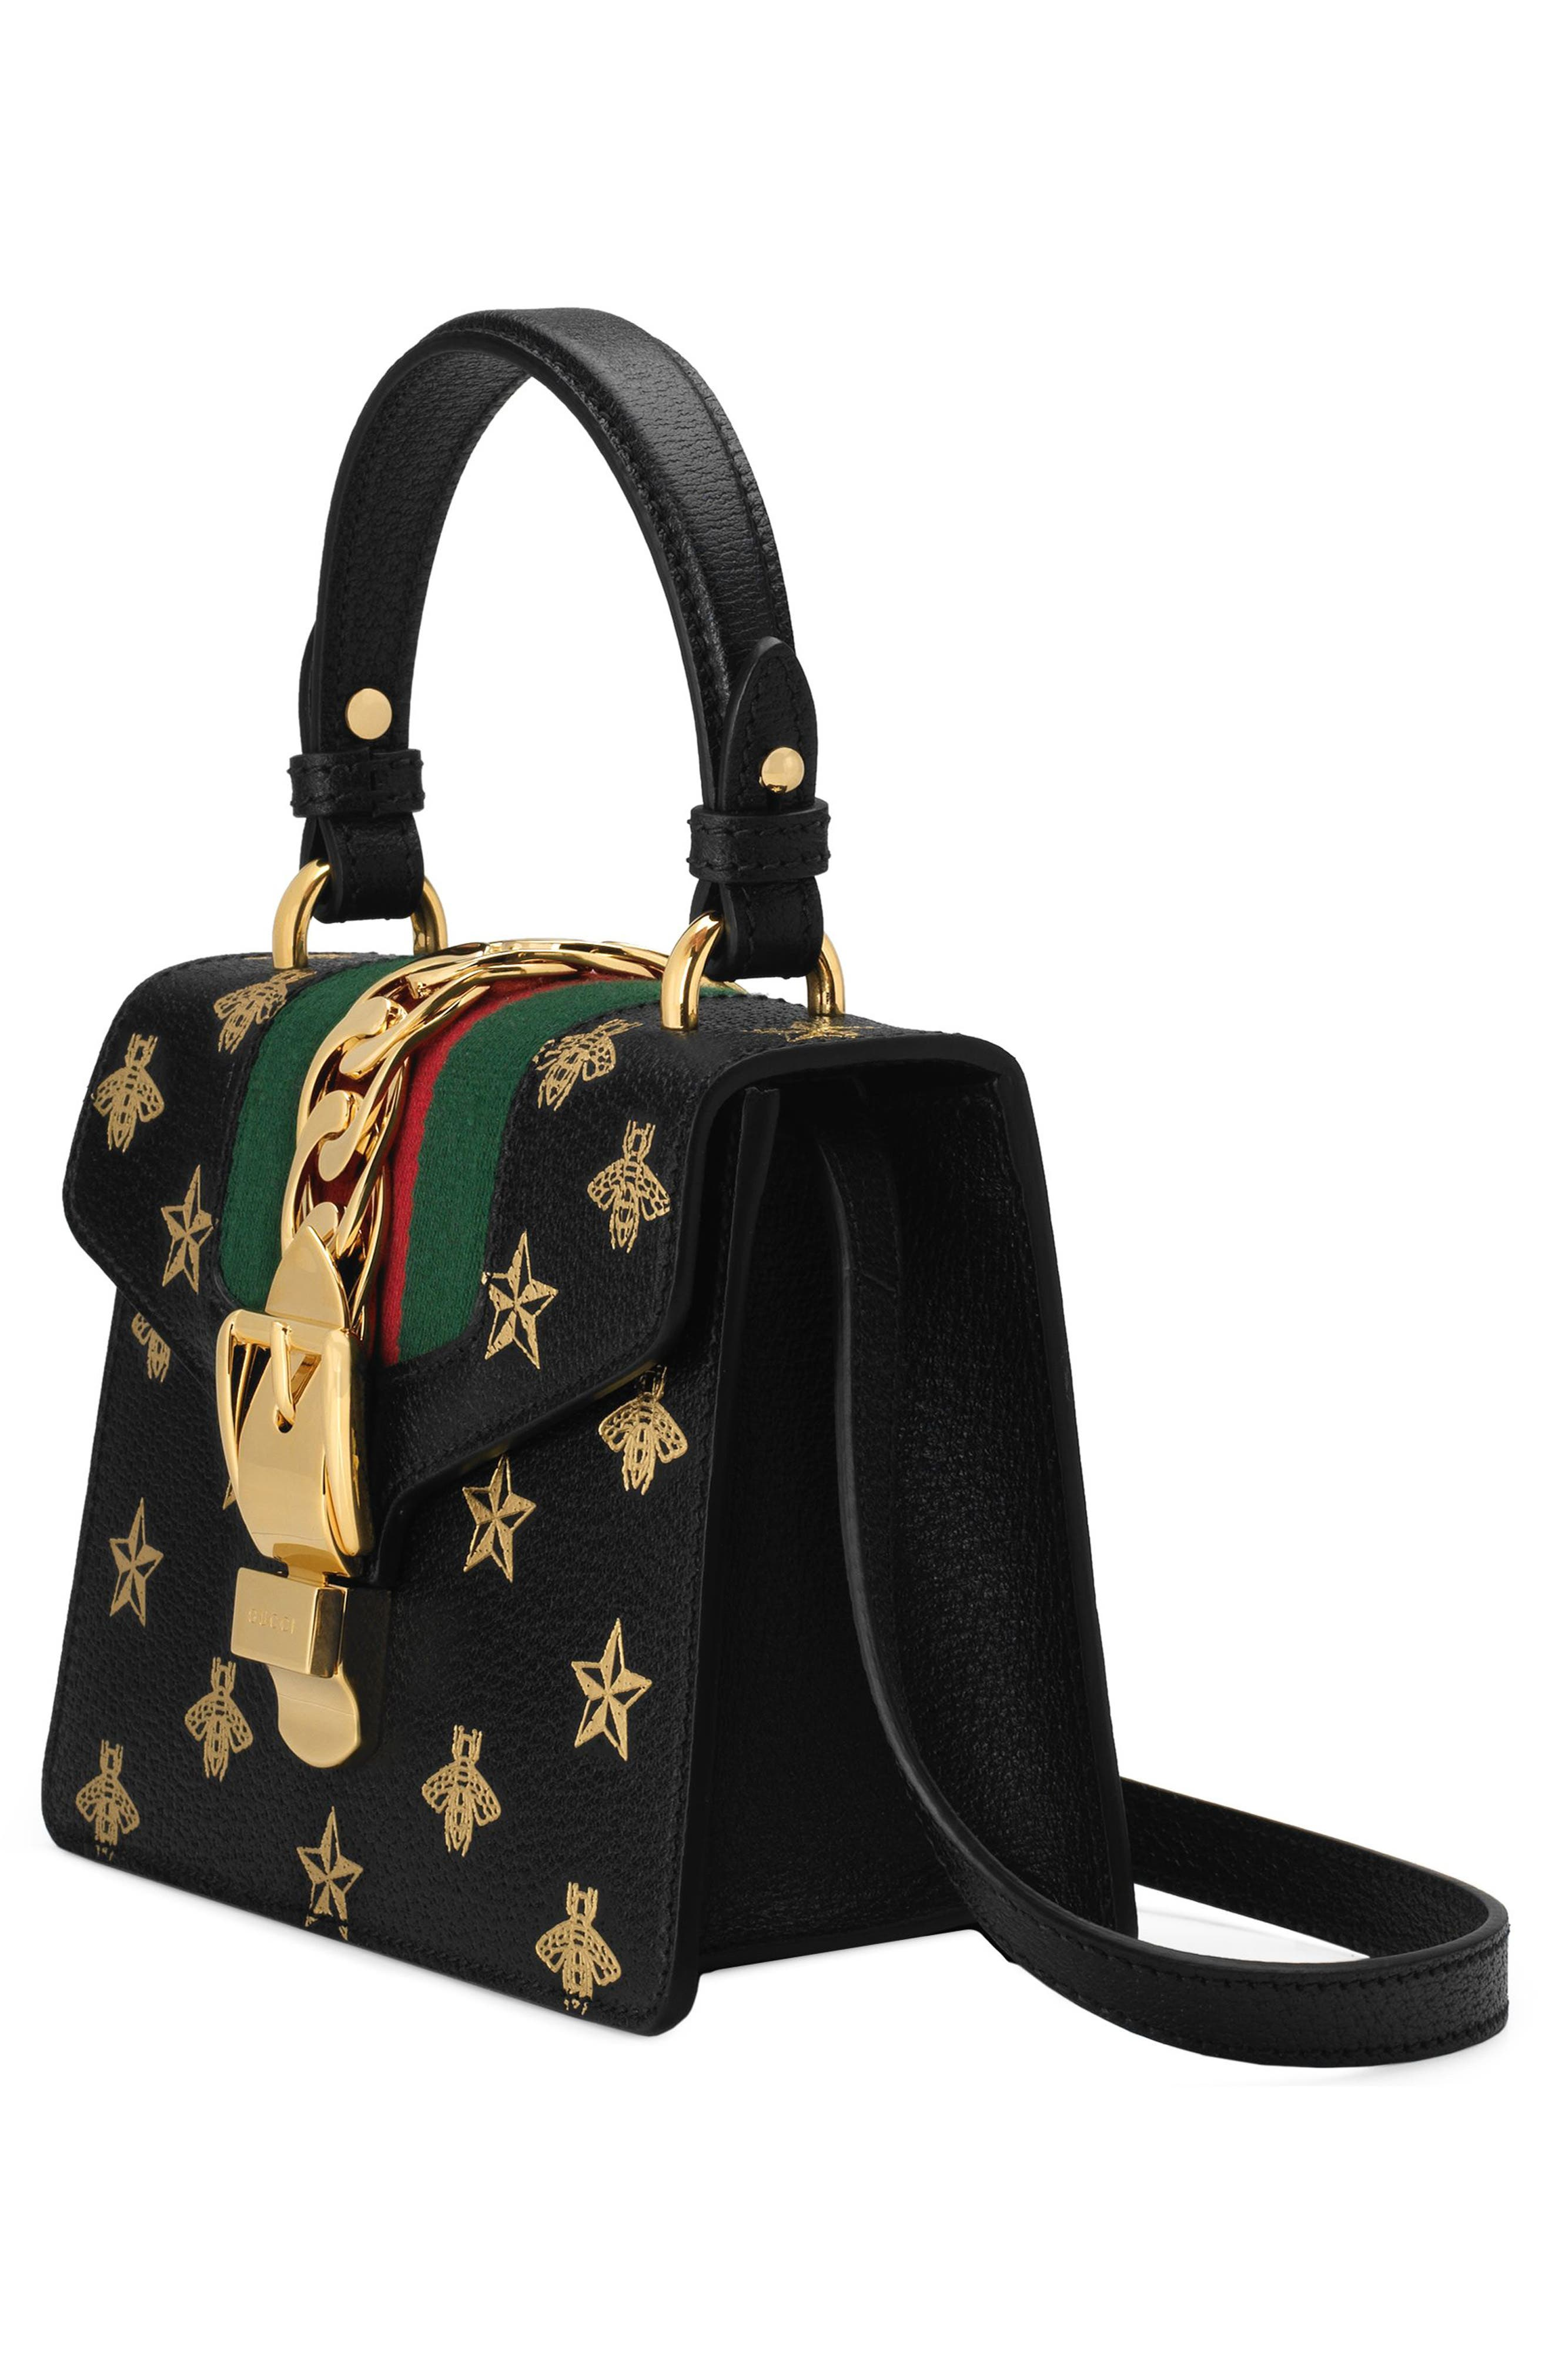 Small Sylvie Top Handle Leather Shoulder Bag,                             Alternate thumbnail 4, color,                             NERO/ ORO/ VERT/ RED